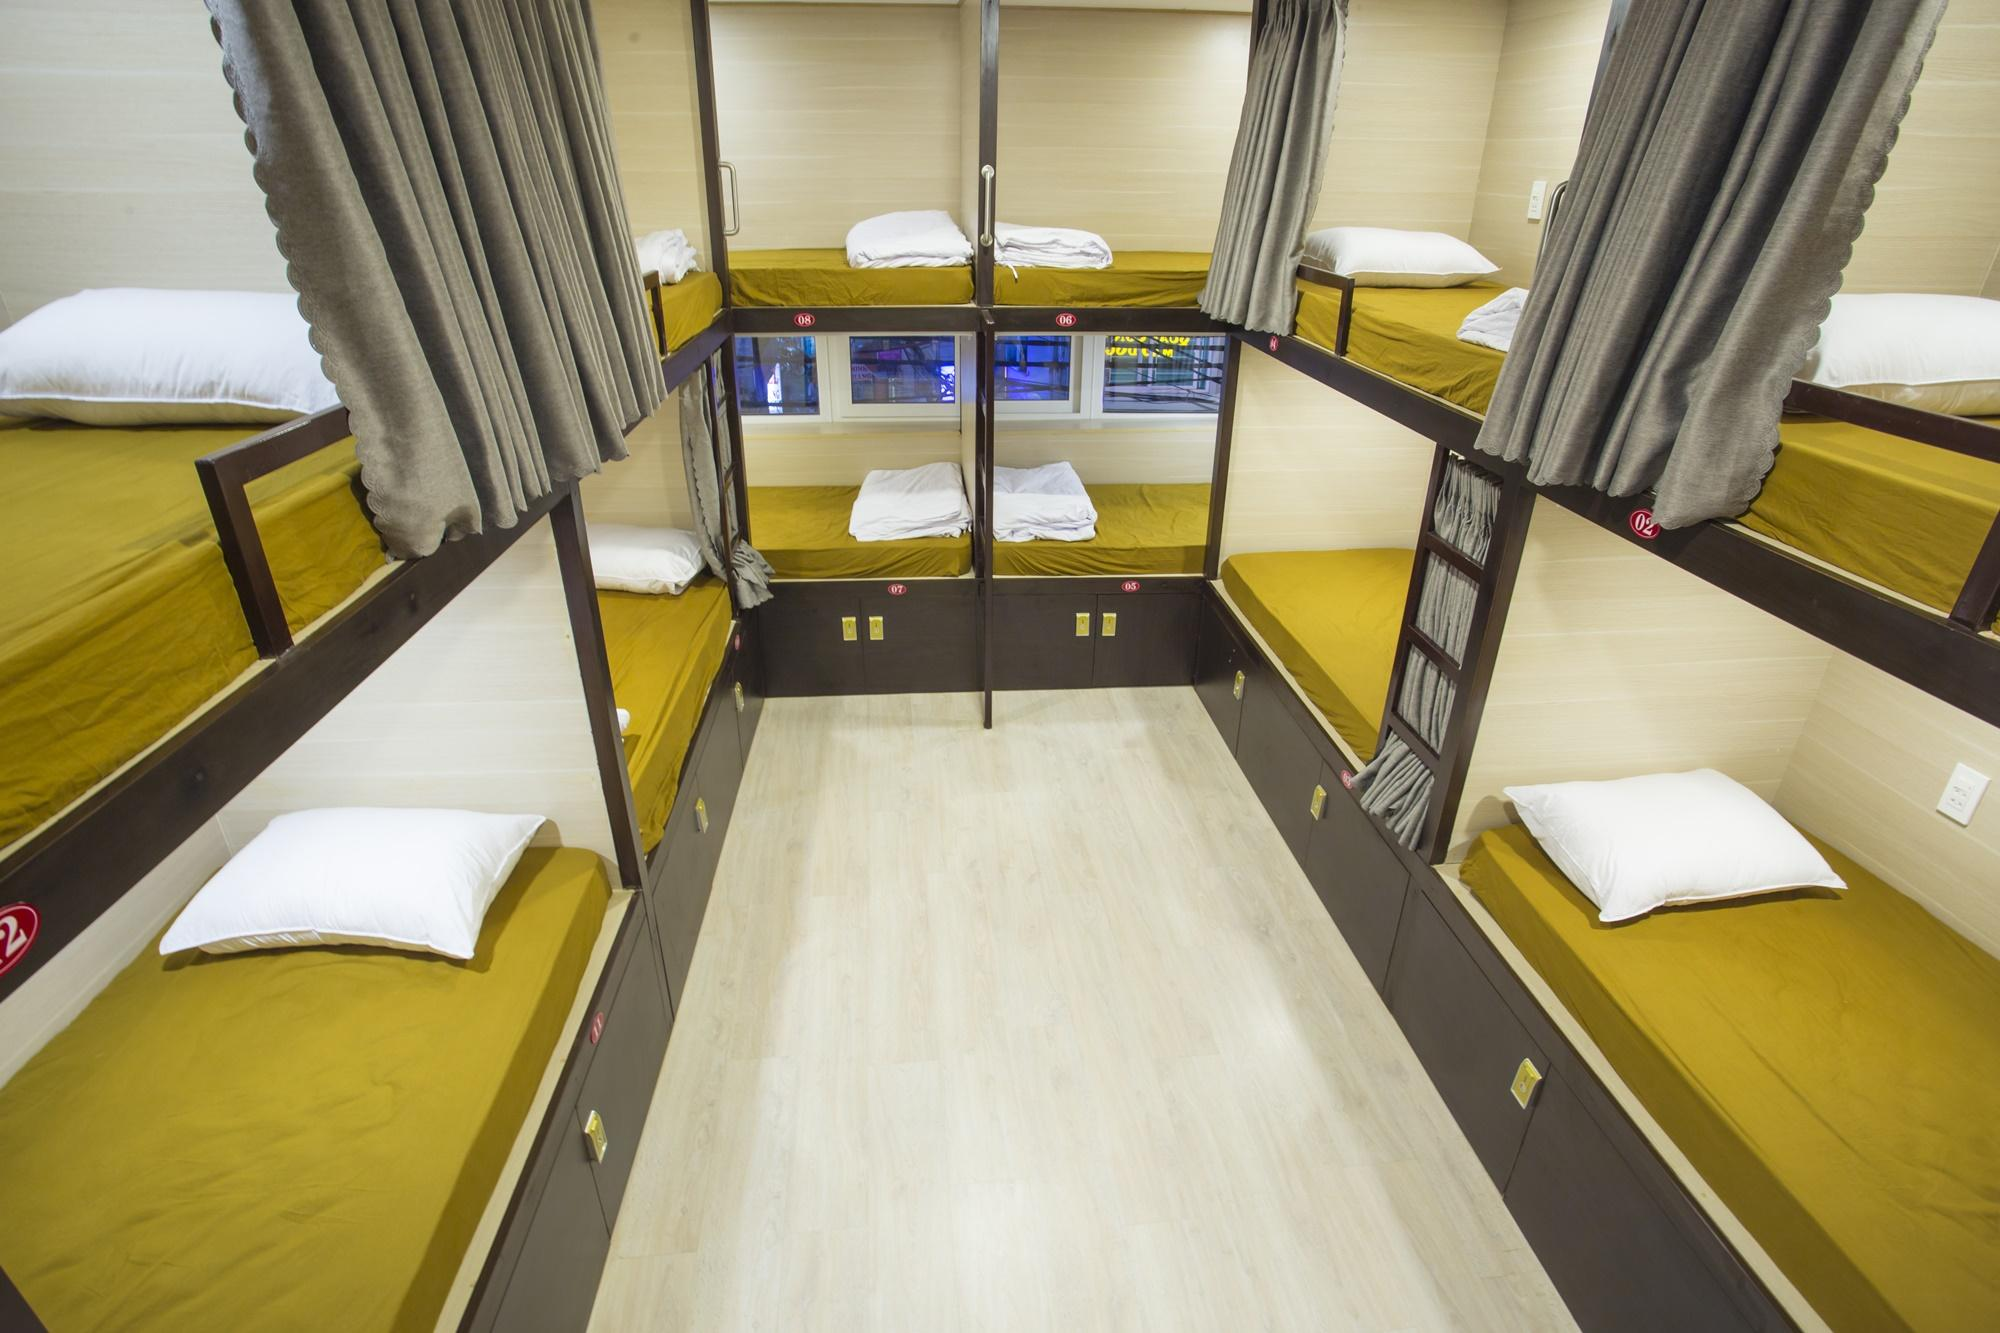 Female Dormitory 14 Bunk Beds Room